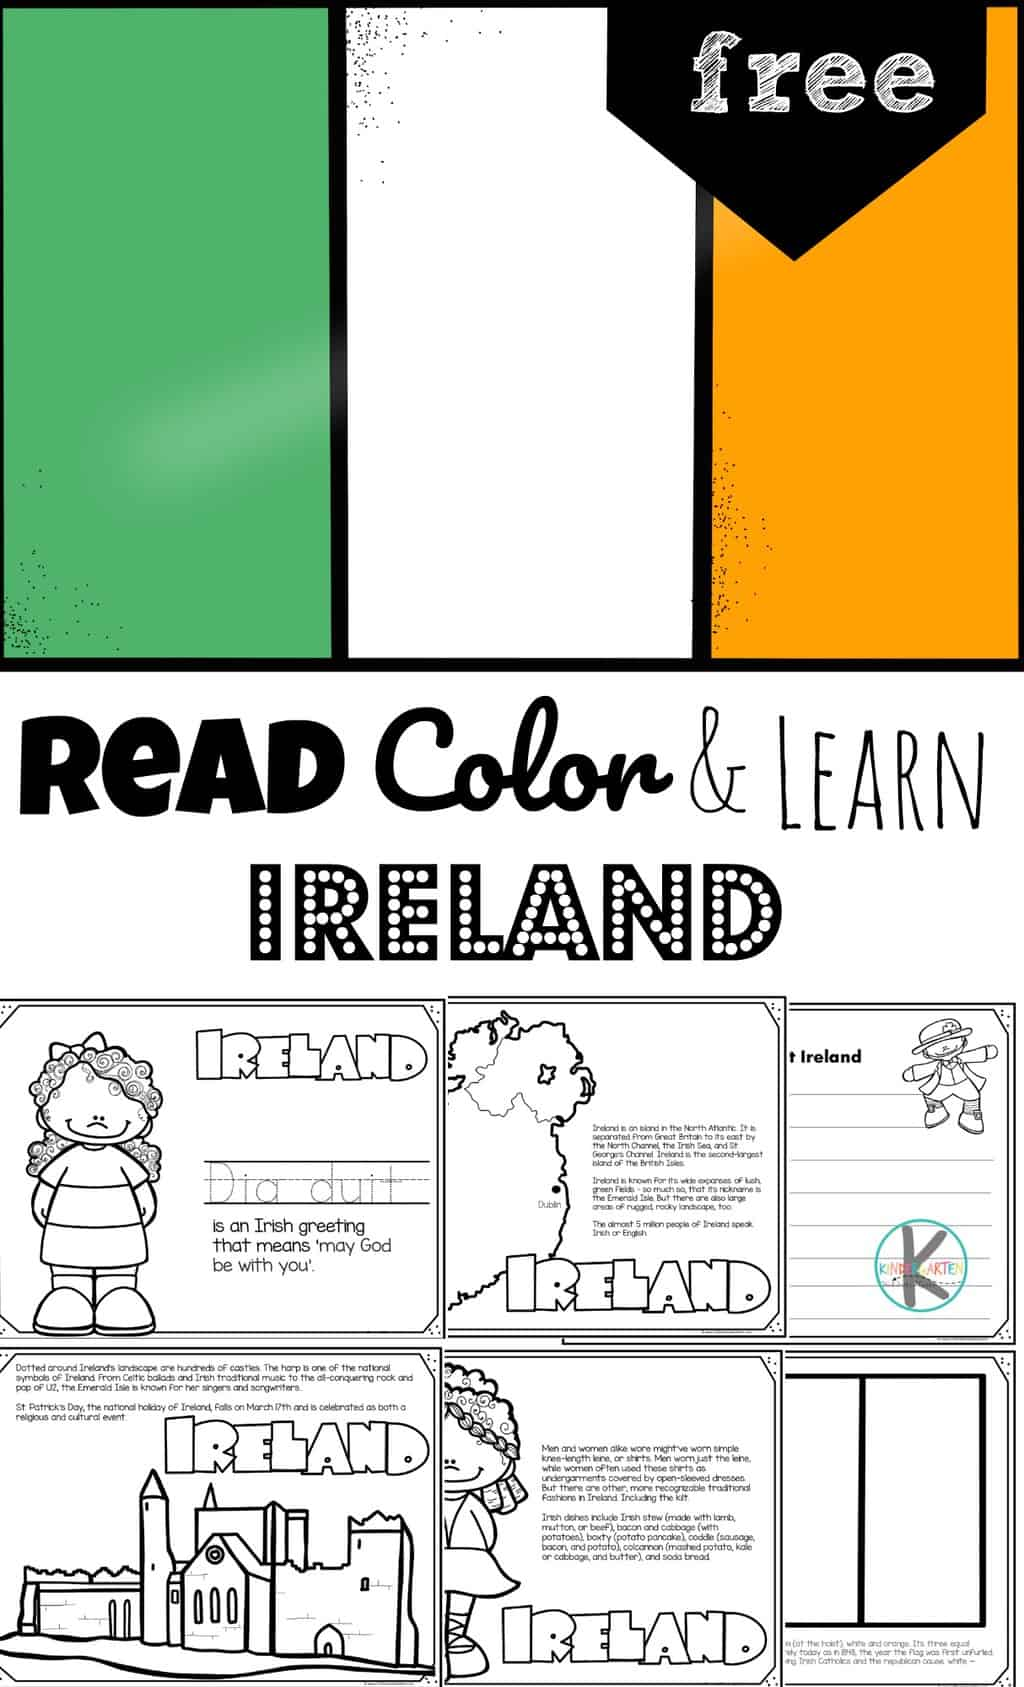 Free Ireland Coloring Pages For Kids